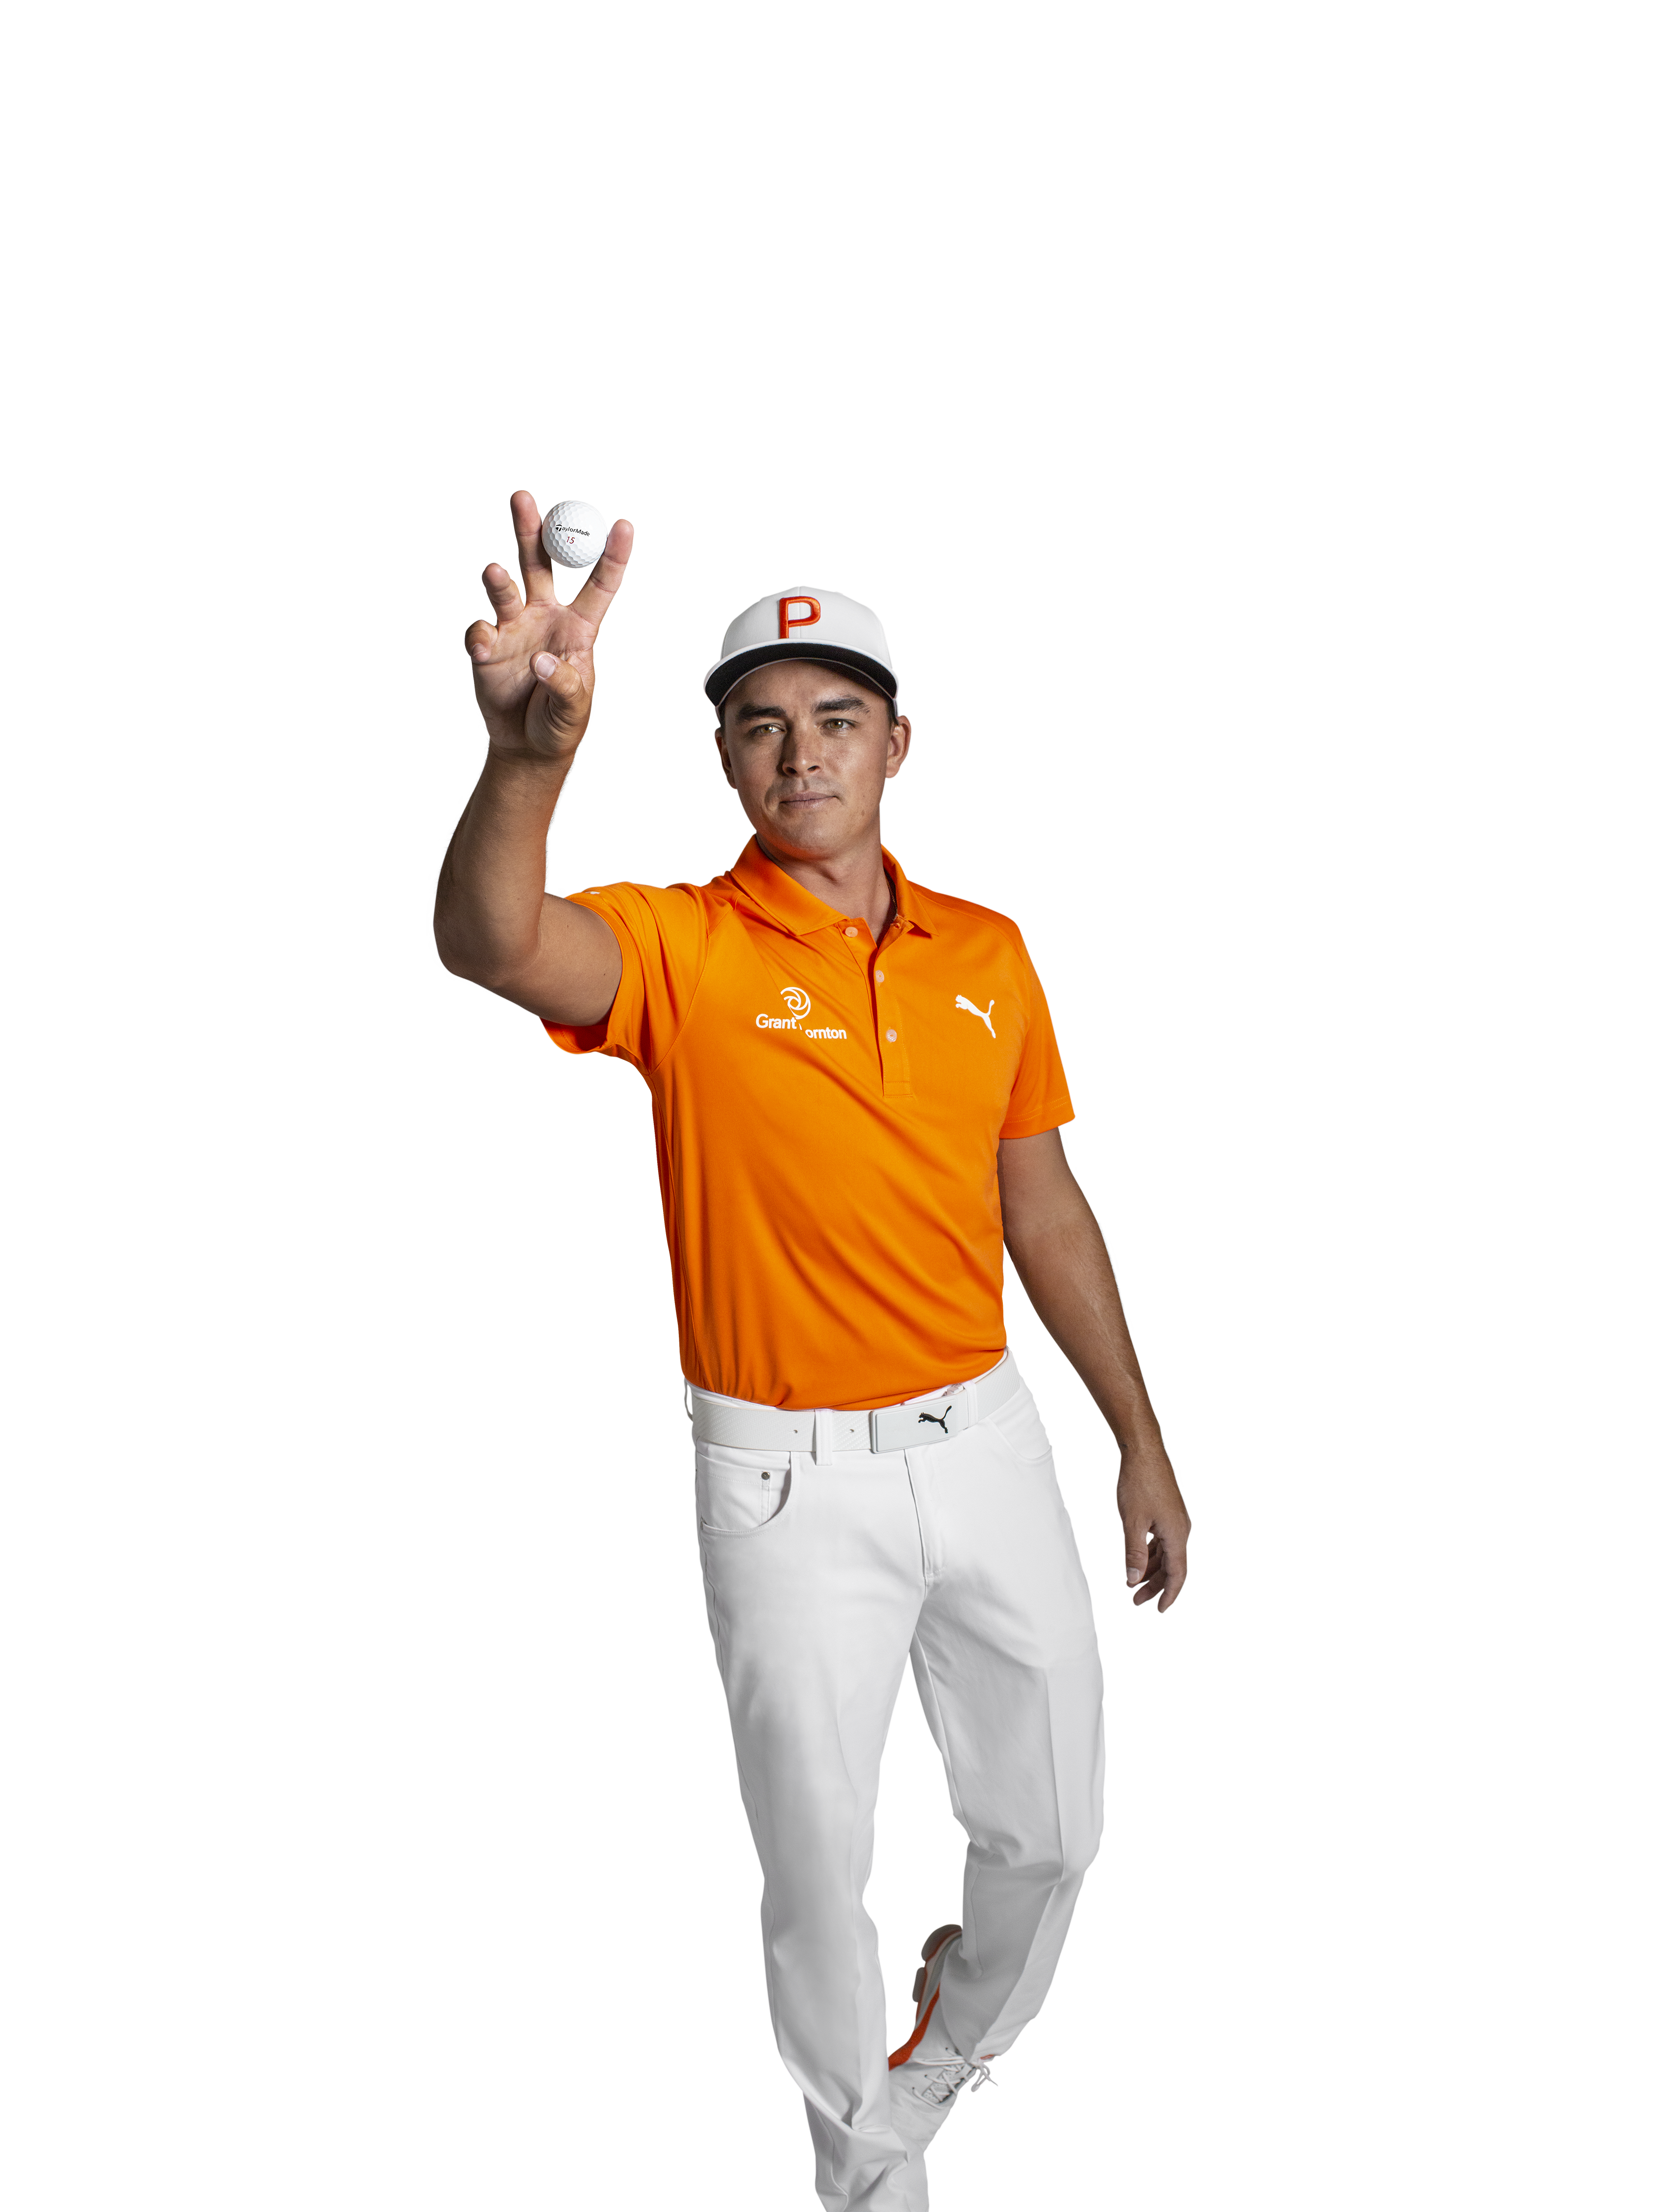 Rickie Fowler To Dance With A New Ball cover image